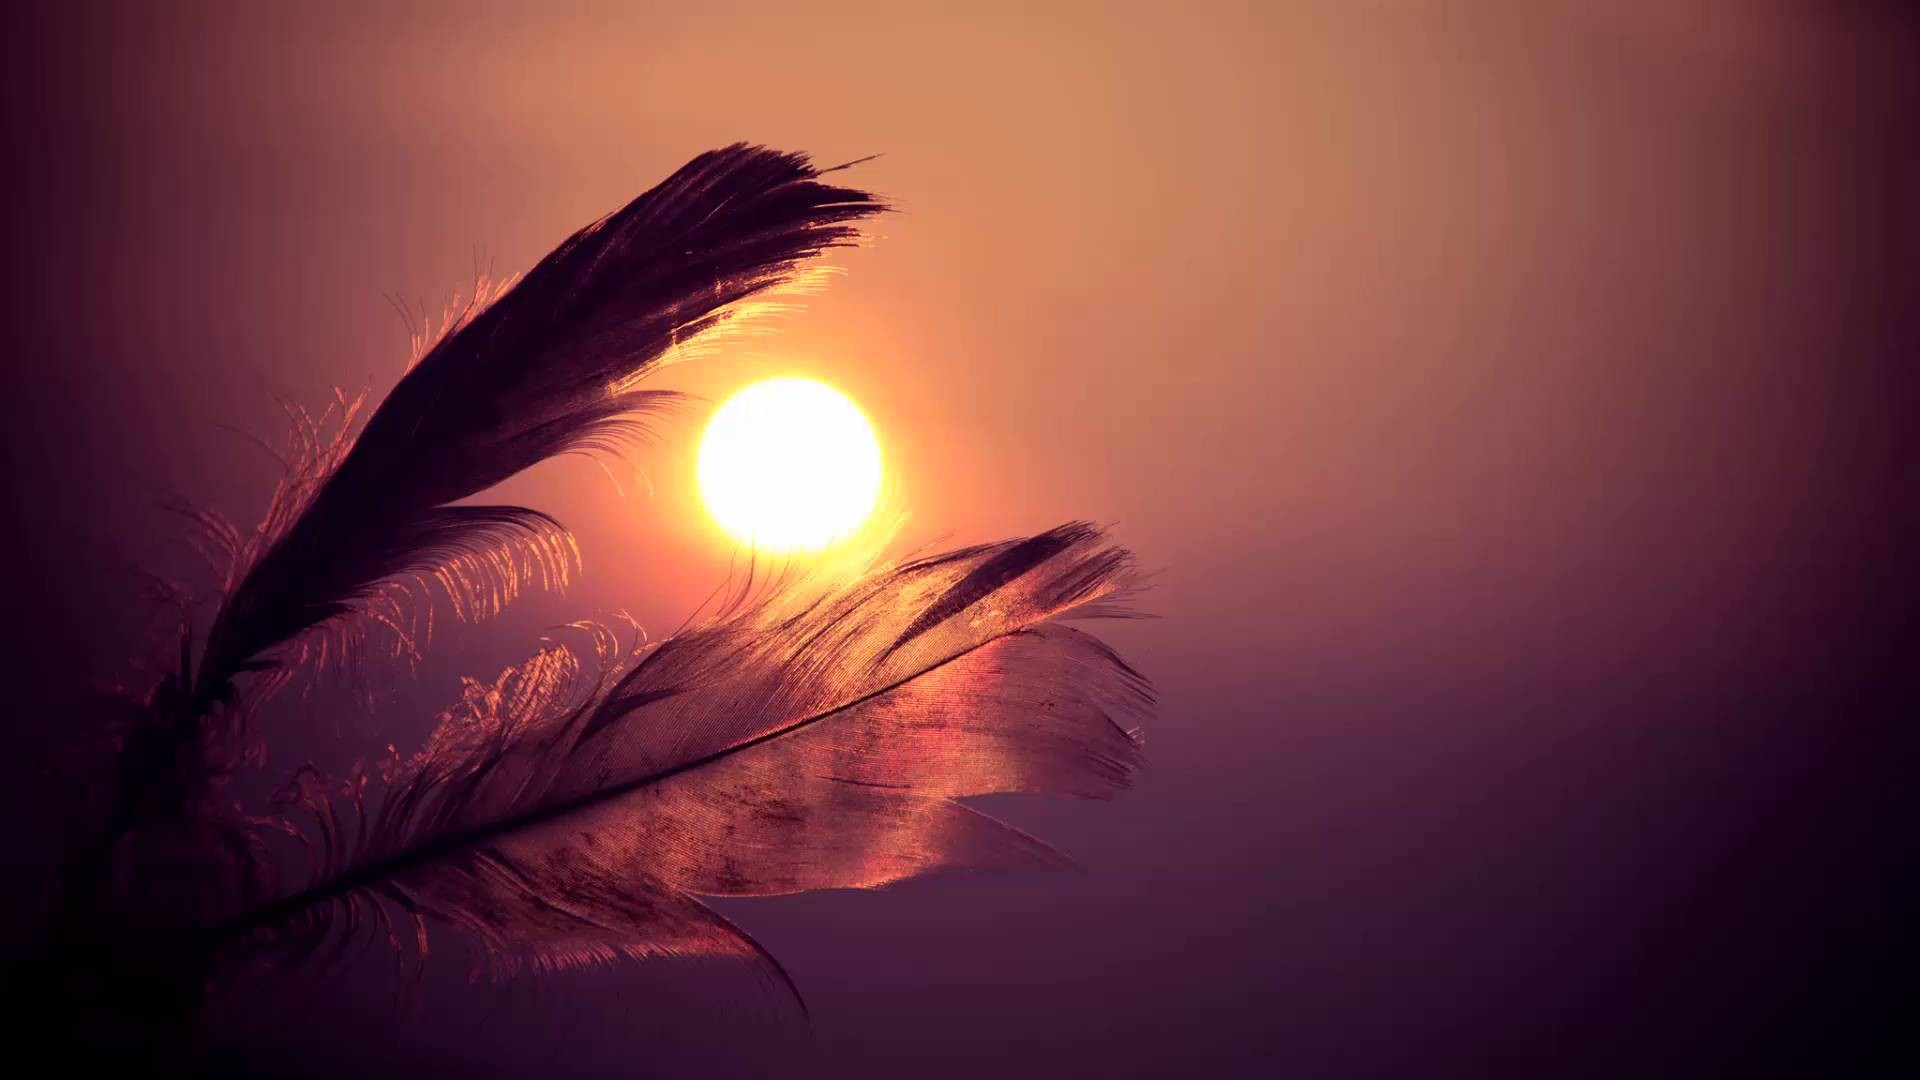 Native american background download free stunning for New cool images